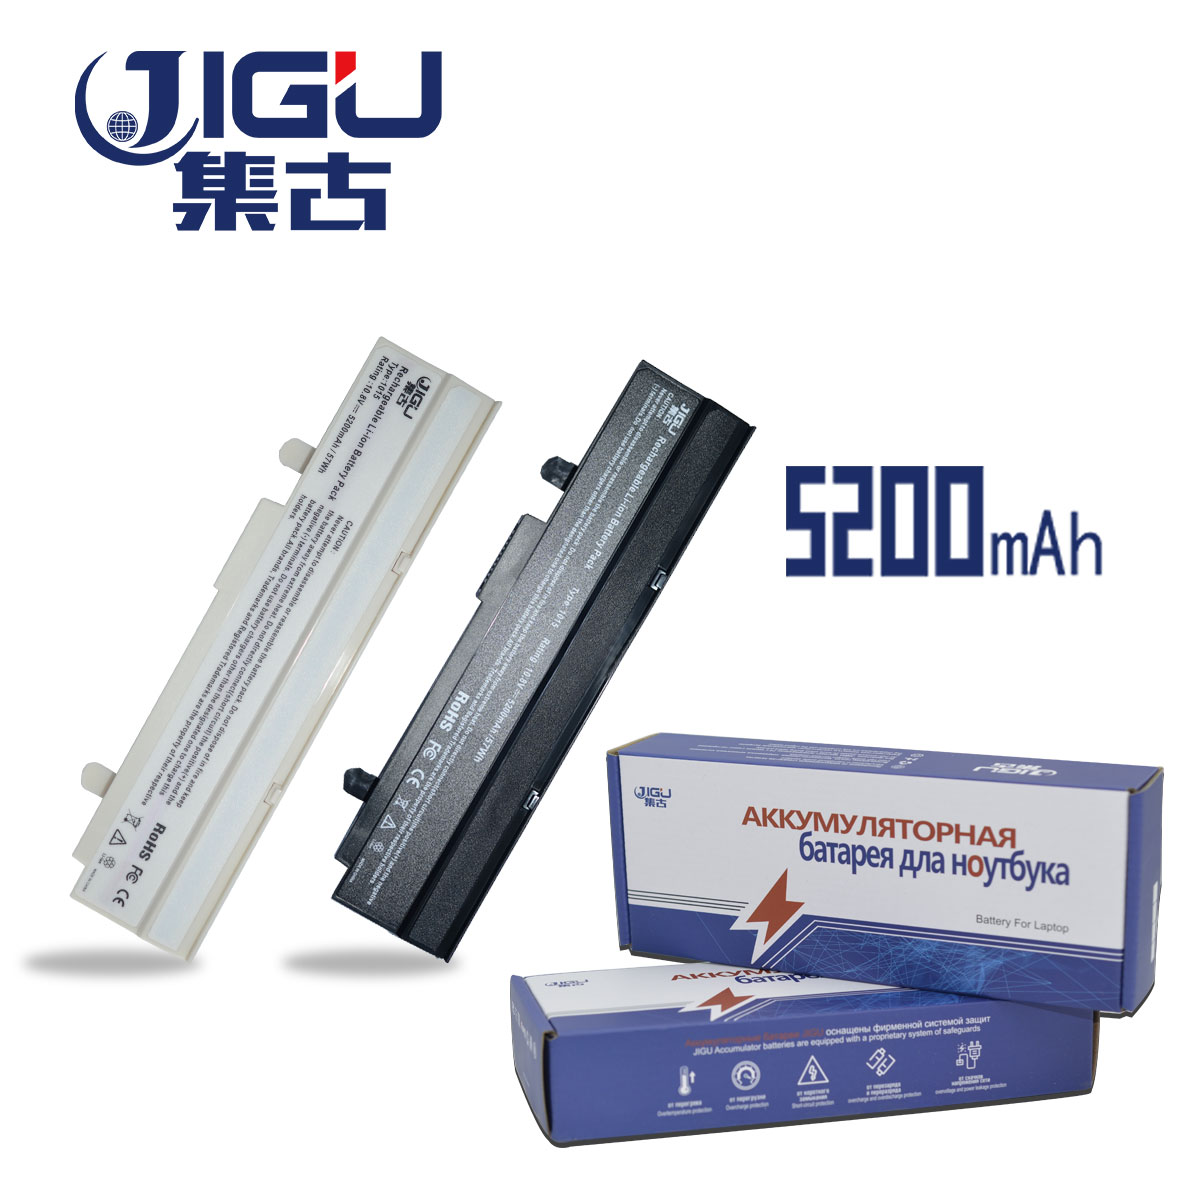 JIGU New Battery For Asus Eee PC EPC 1215 PC 1215B 1215N 1015b <font><b>1015</b></font> 1015bx 1015px 1015p A31-<font><b>1015</b></font> <font><b>A32</b></font>-<font><b>1015</b></font> AL31-<font><b>1015</b></font> image